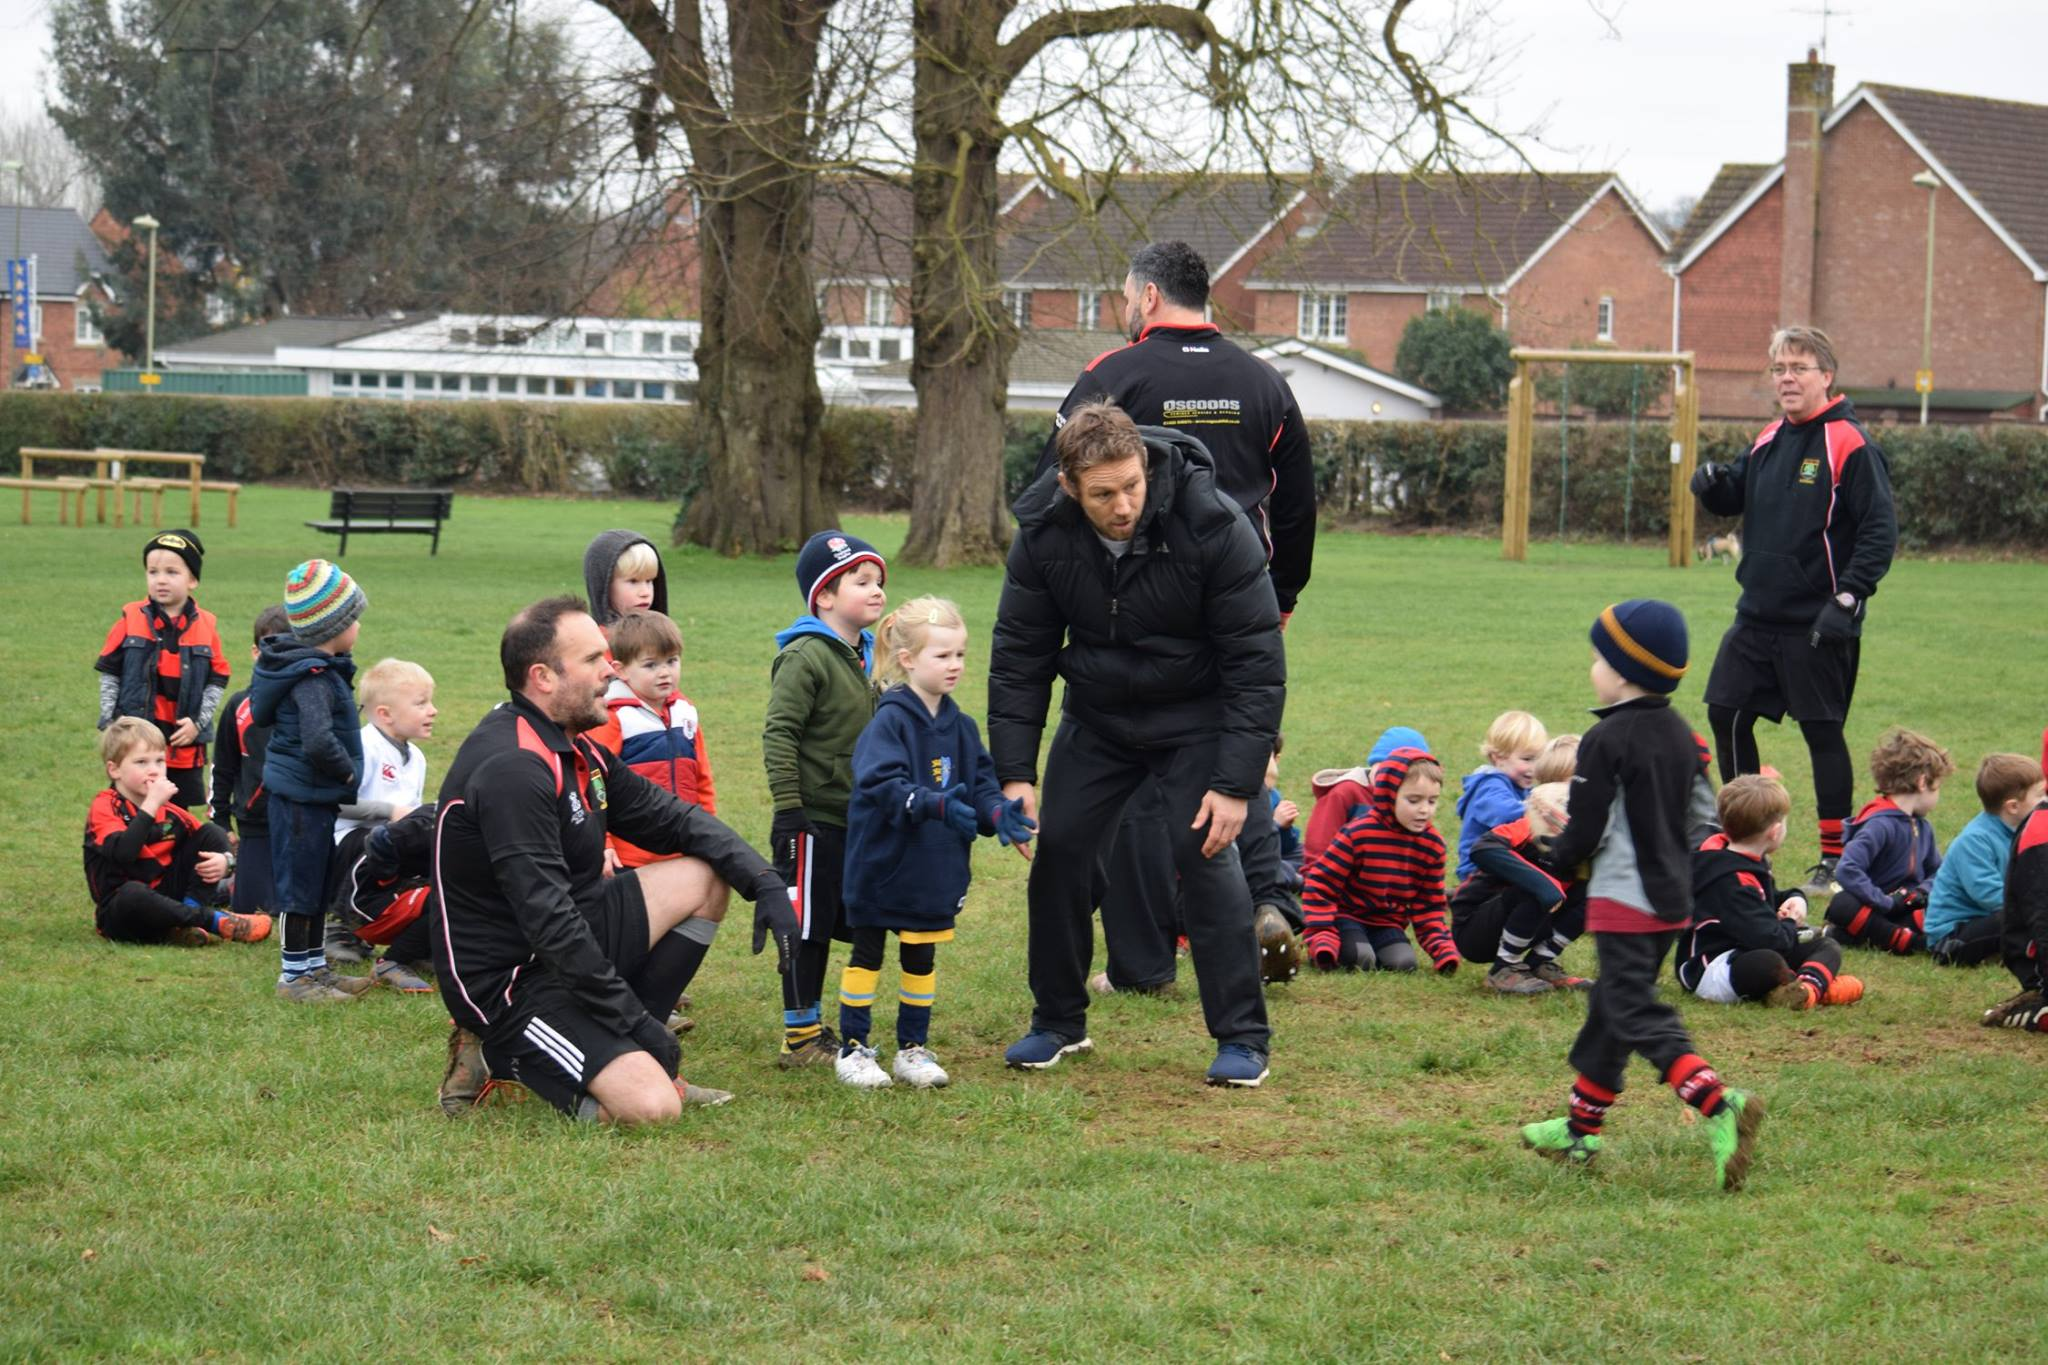 Image associated with UNDER 6 WANDERER TRAINS WITH JONNY at Thanet Wanderers RUFC